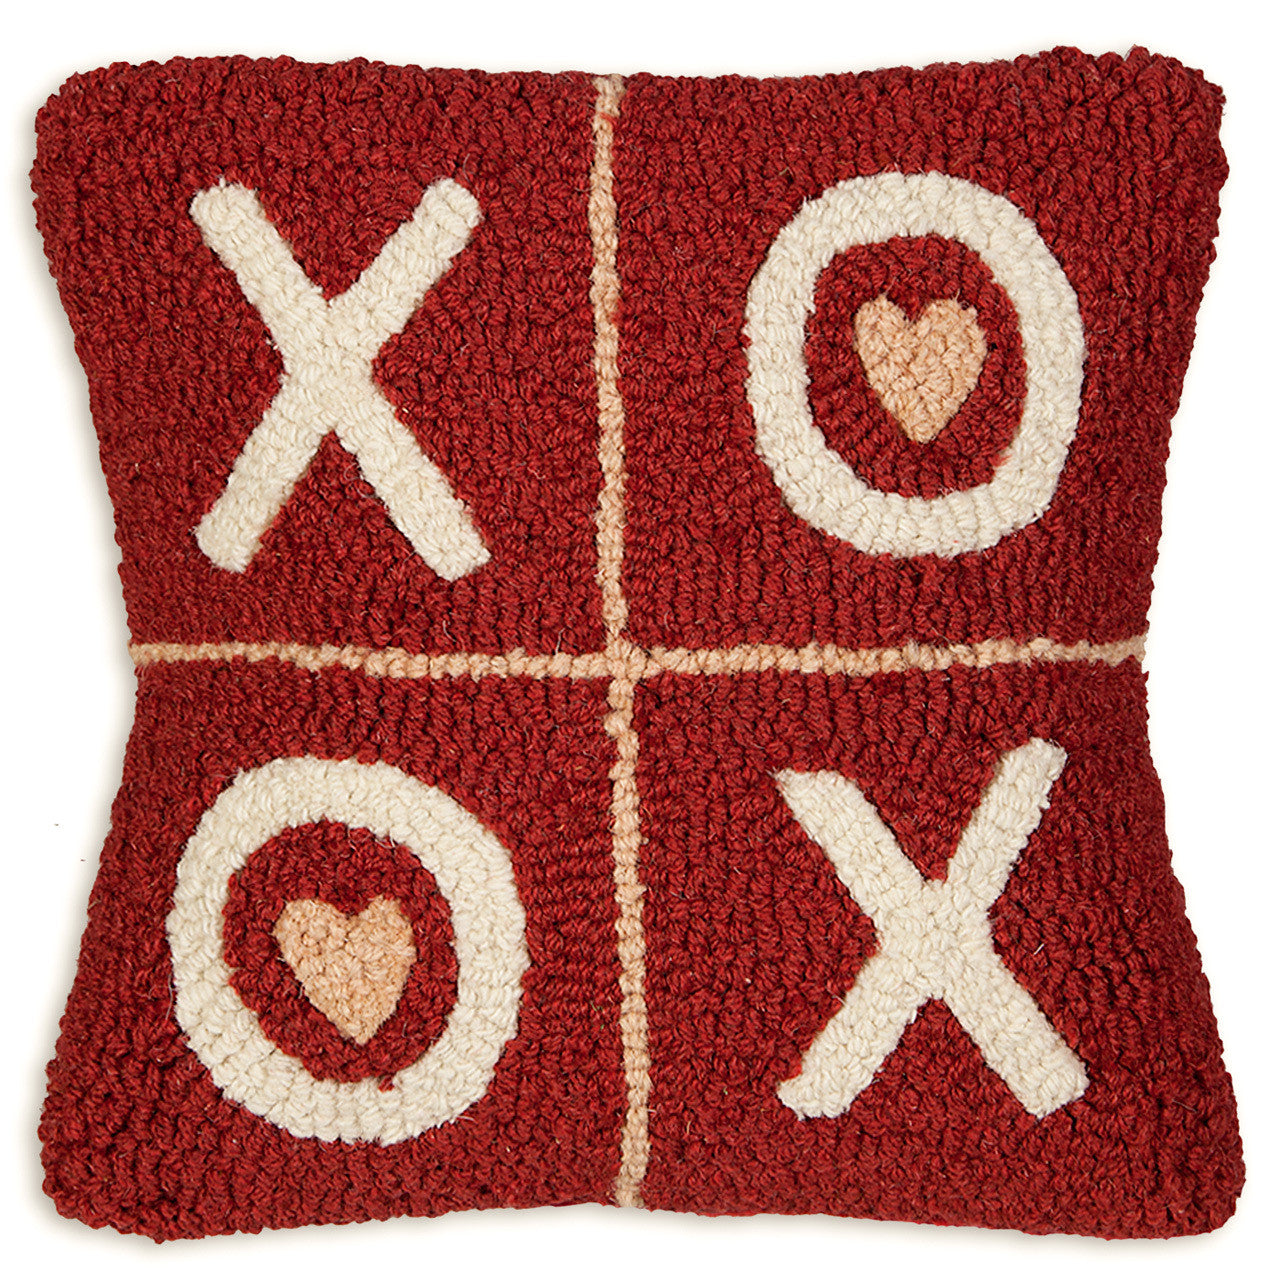 XOXO Hooked Pillow Daniel Dry Goods